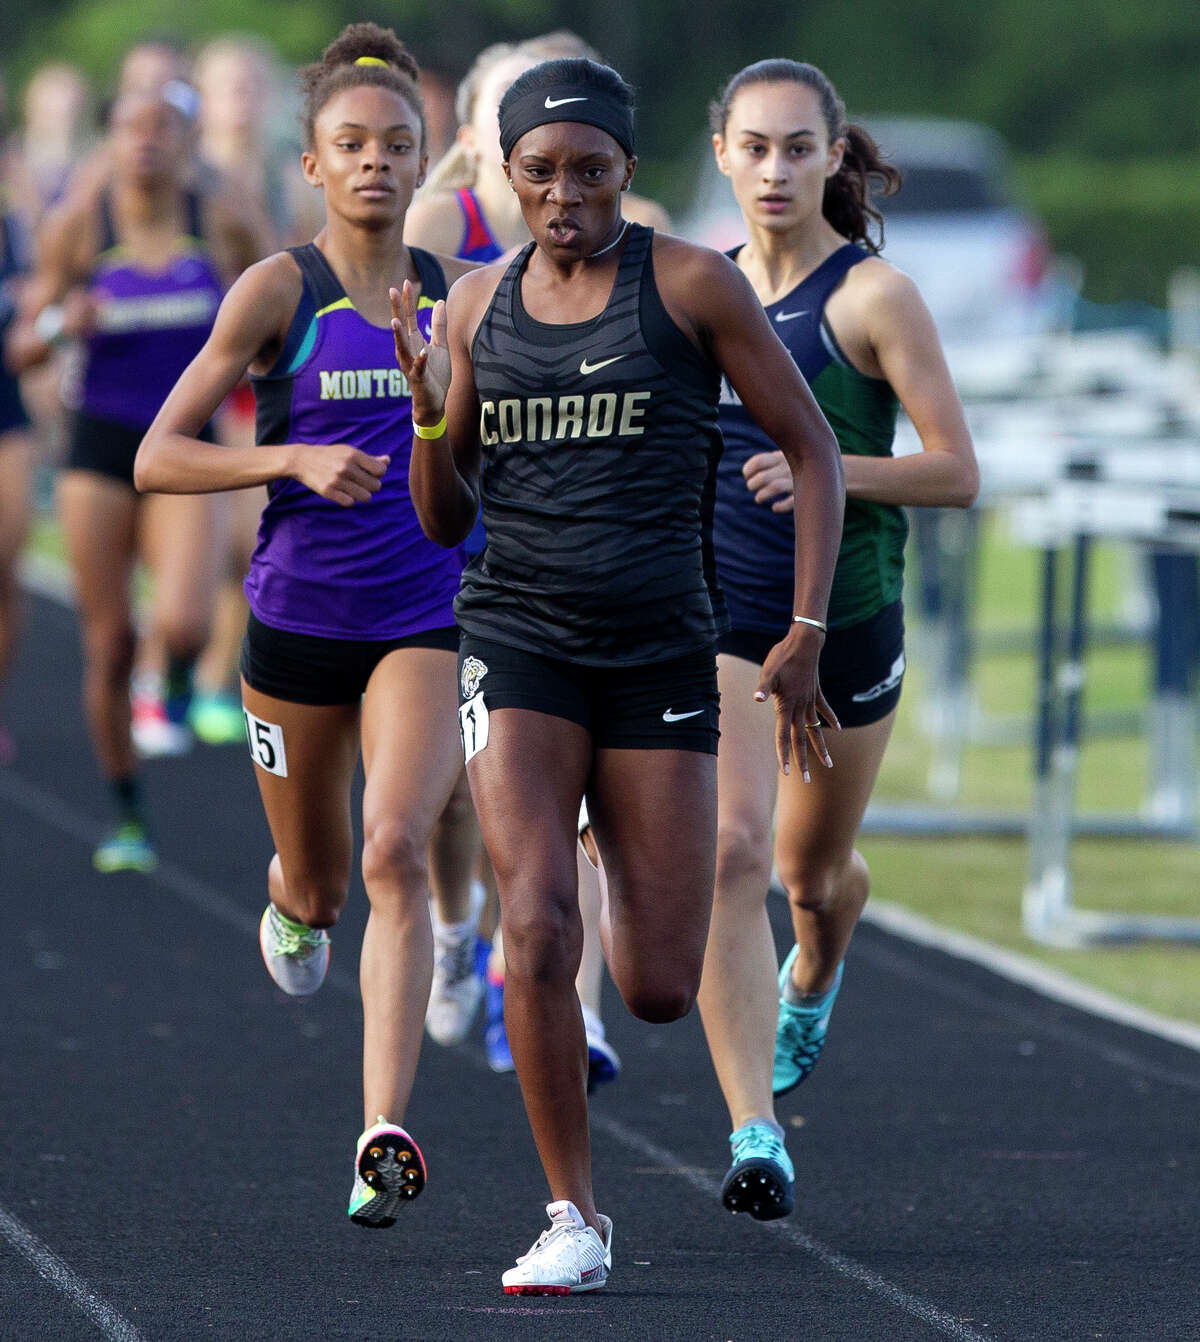 Conroe's Zena Utley finished first in the girls 800-meter run during the District 12-6A high school track meet at College Park High School, Thursday, April 12, 2018, in The Woodlands.